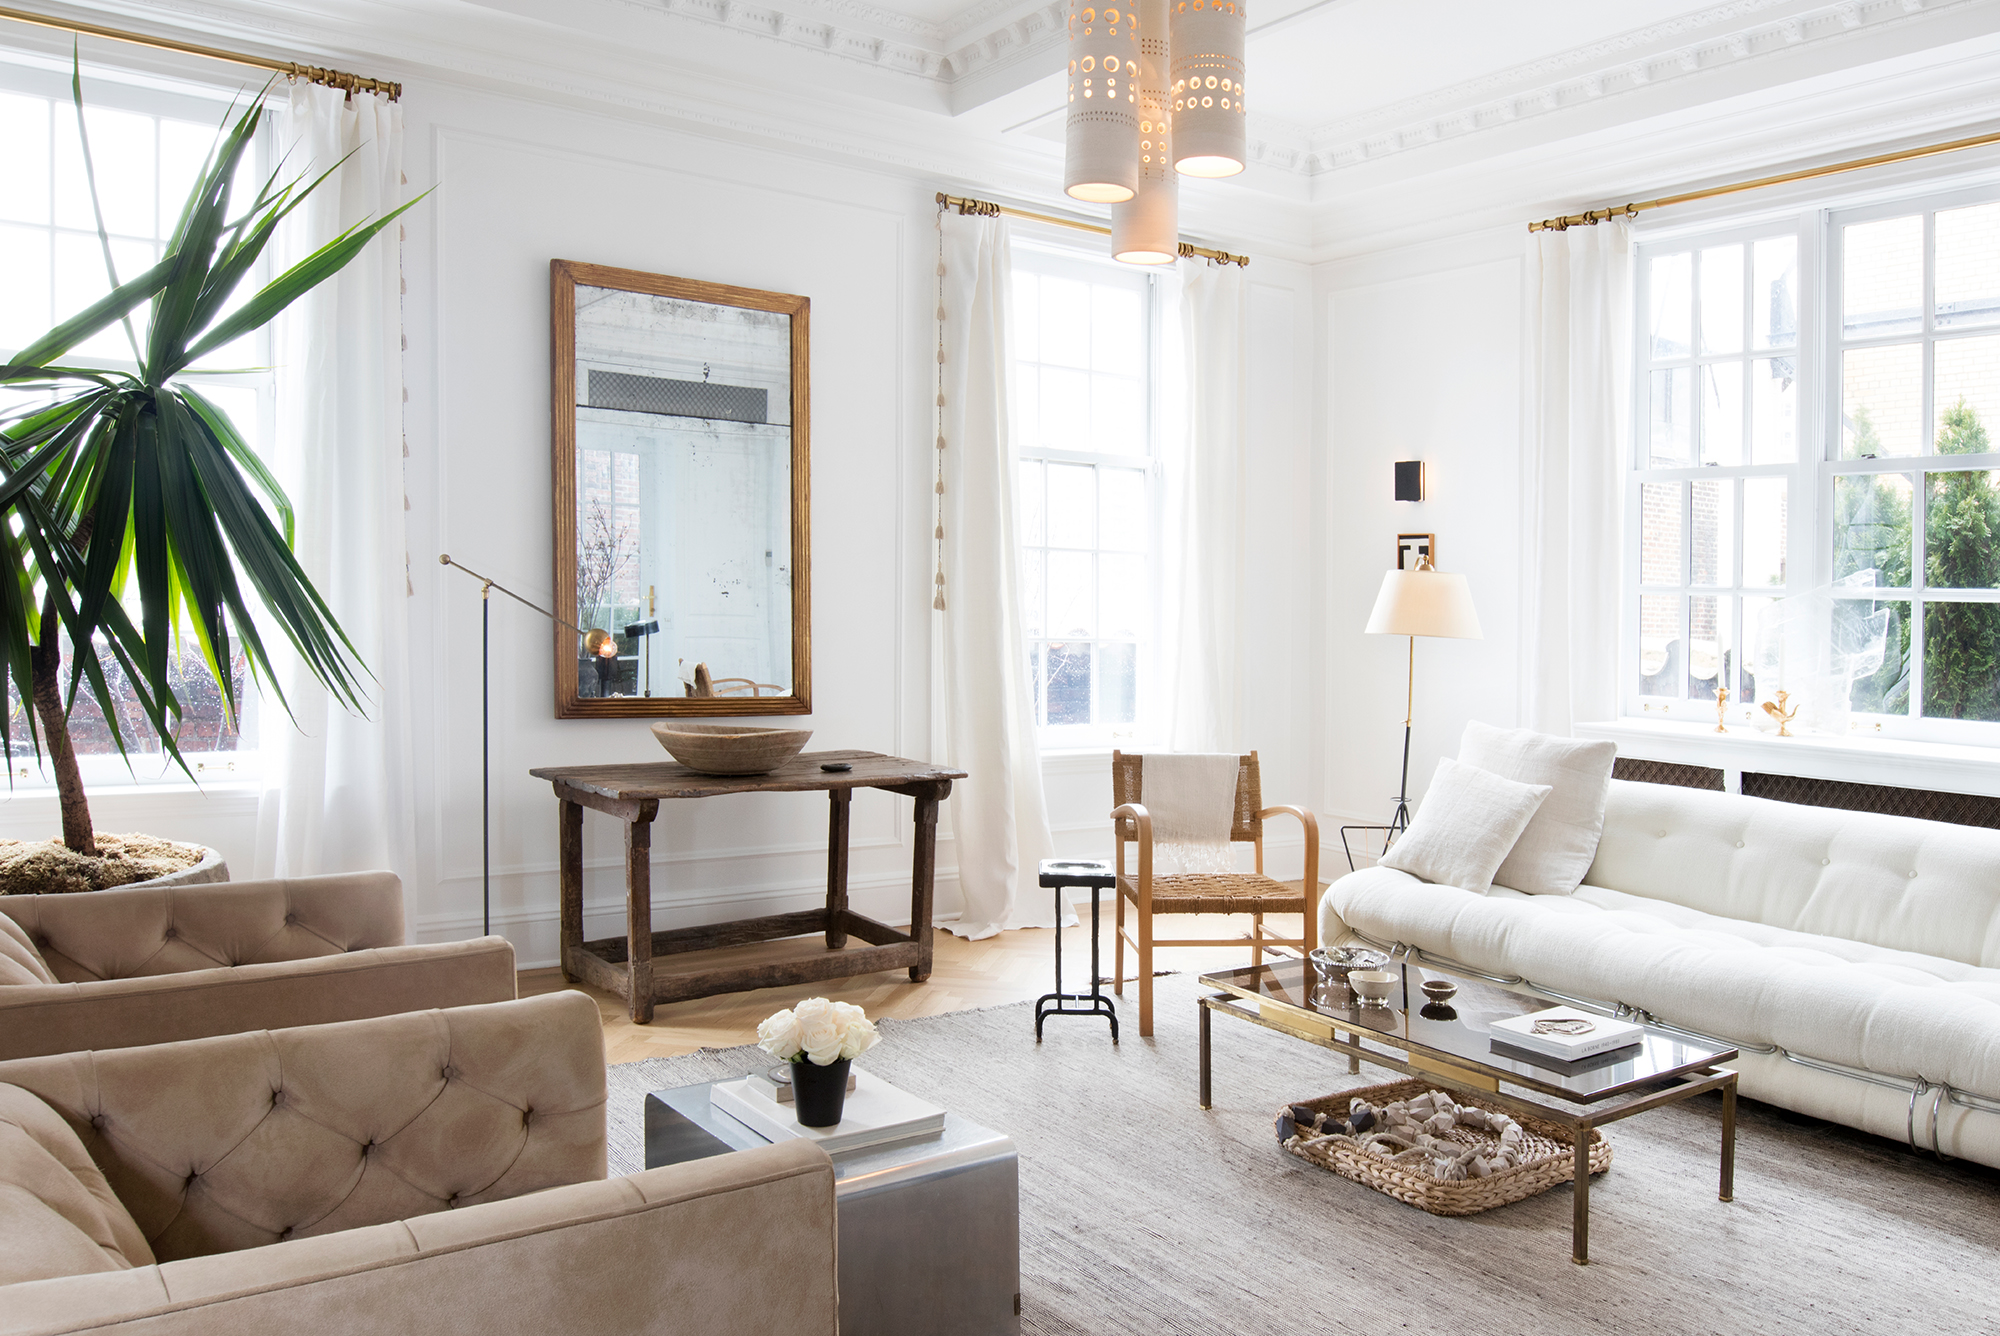 Design by Jeremiah Brent, featured on EyeSwoon